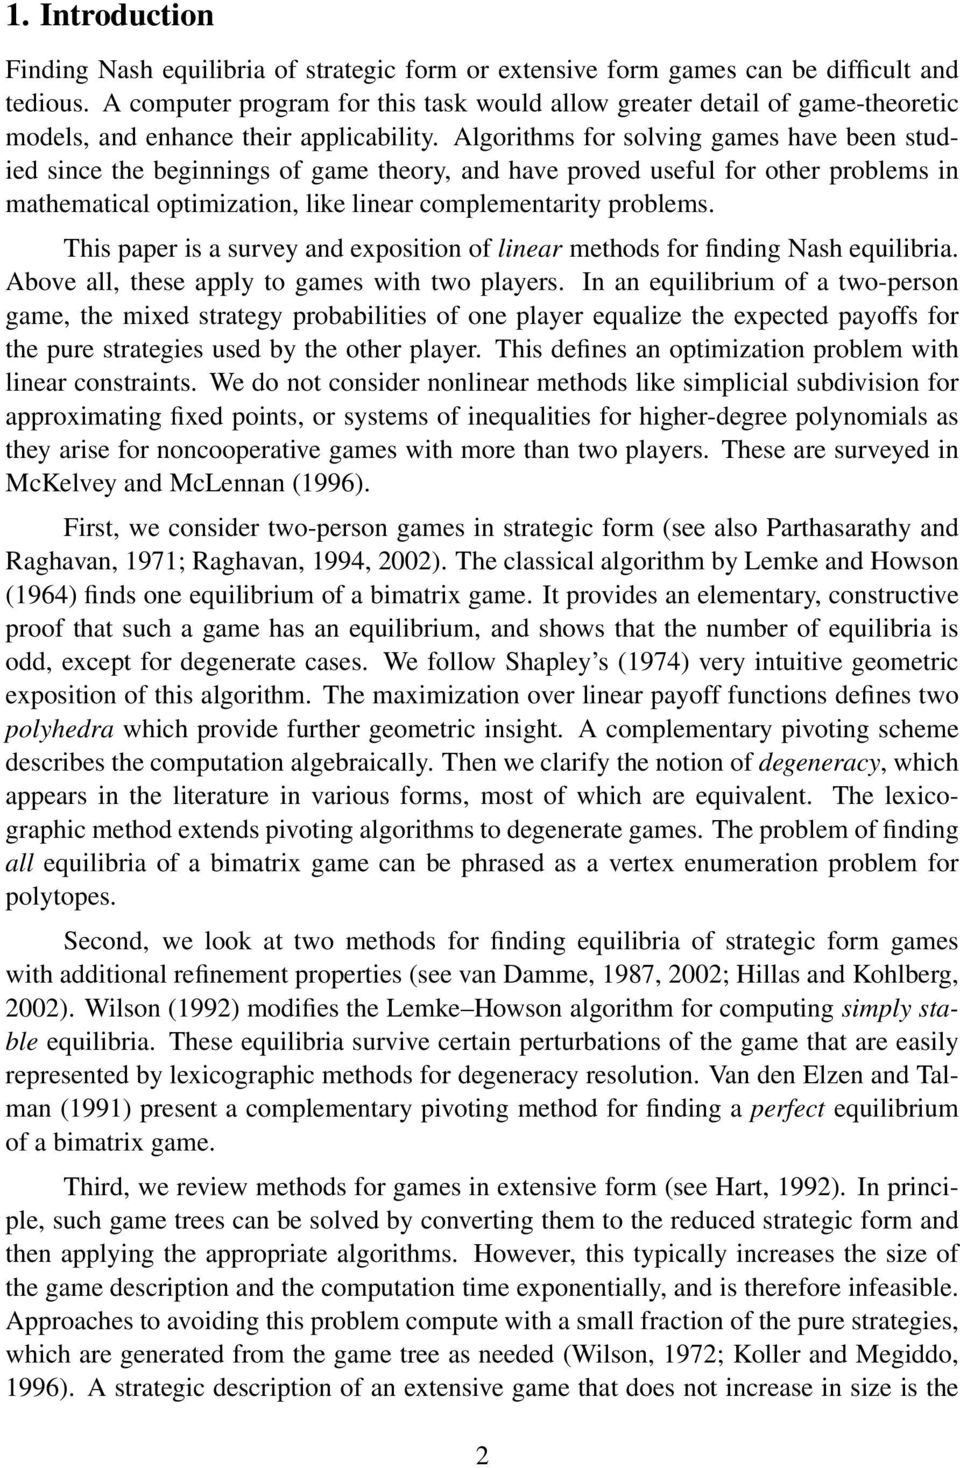 Algorithms for solving games have been studied since the beginnings of game theory, and have proved useful for other problems in mathematical optimization, like linear complementarity problems.